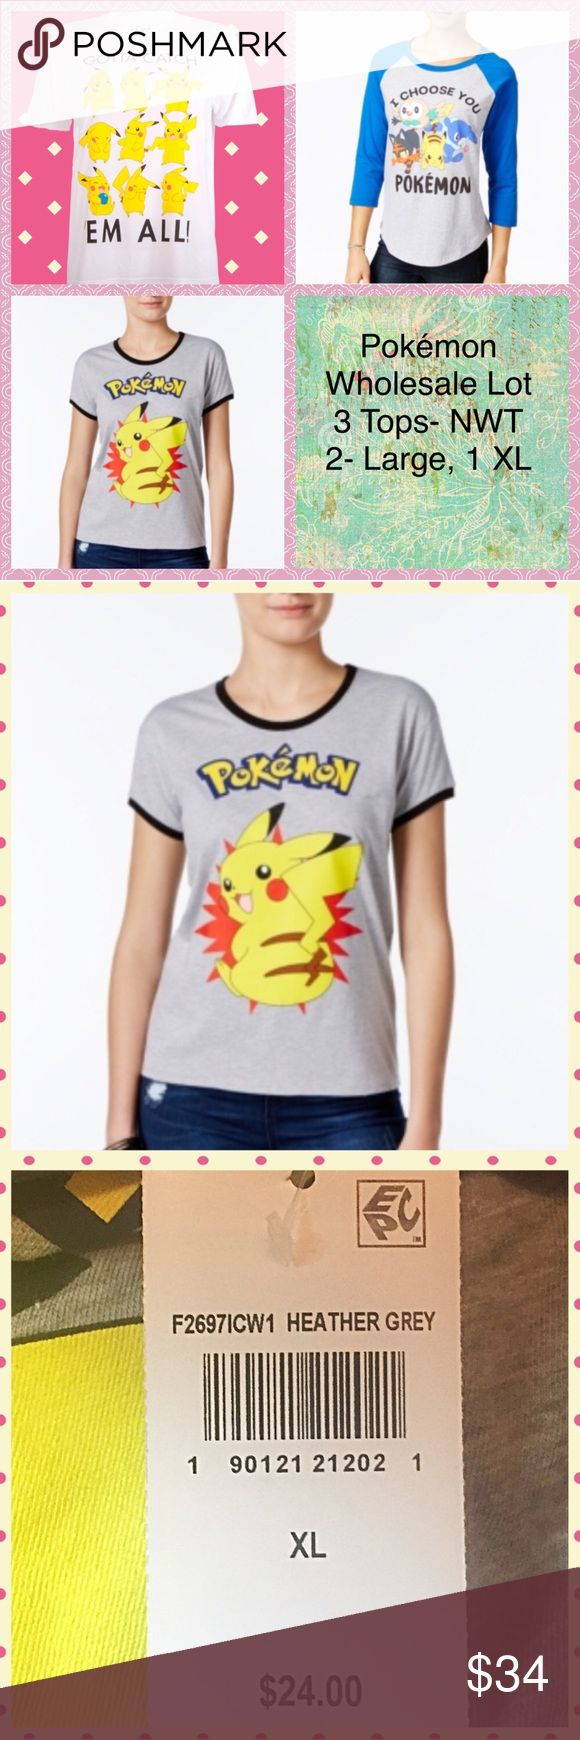 ⚡️ Pokémon Tees Wholesale 3pc Lot ⚡️ Pokémon Wholesale 3pc Lot  • View original listings for more pictures & individual descriptions  • Limited time offer until listings starts to sell (I am very active, so if this is posted then It's available)  3 Junior sizing Women's top, all Pokémon themed • 2 Large • 1 XL  Brand New with Tags, no defects or wear  MSRP: $24 each, $72 total + tax  • I welcome Bundles & Offers • smoke & Pet Free Home • fast shipping • 100s of love notes, great ratings, & 5…